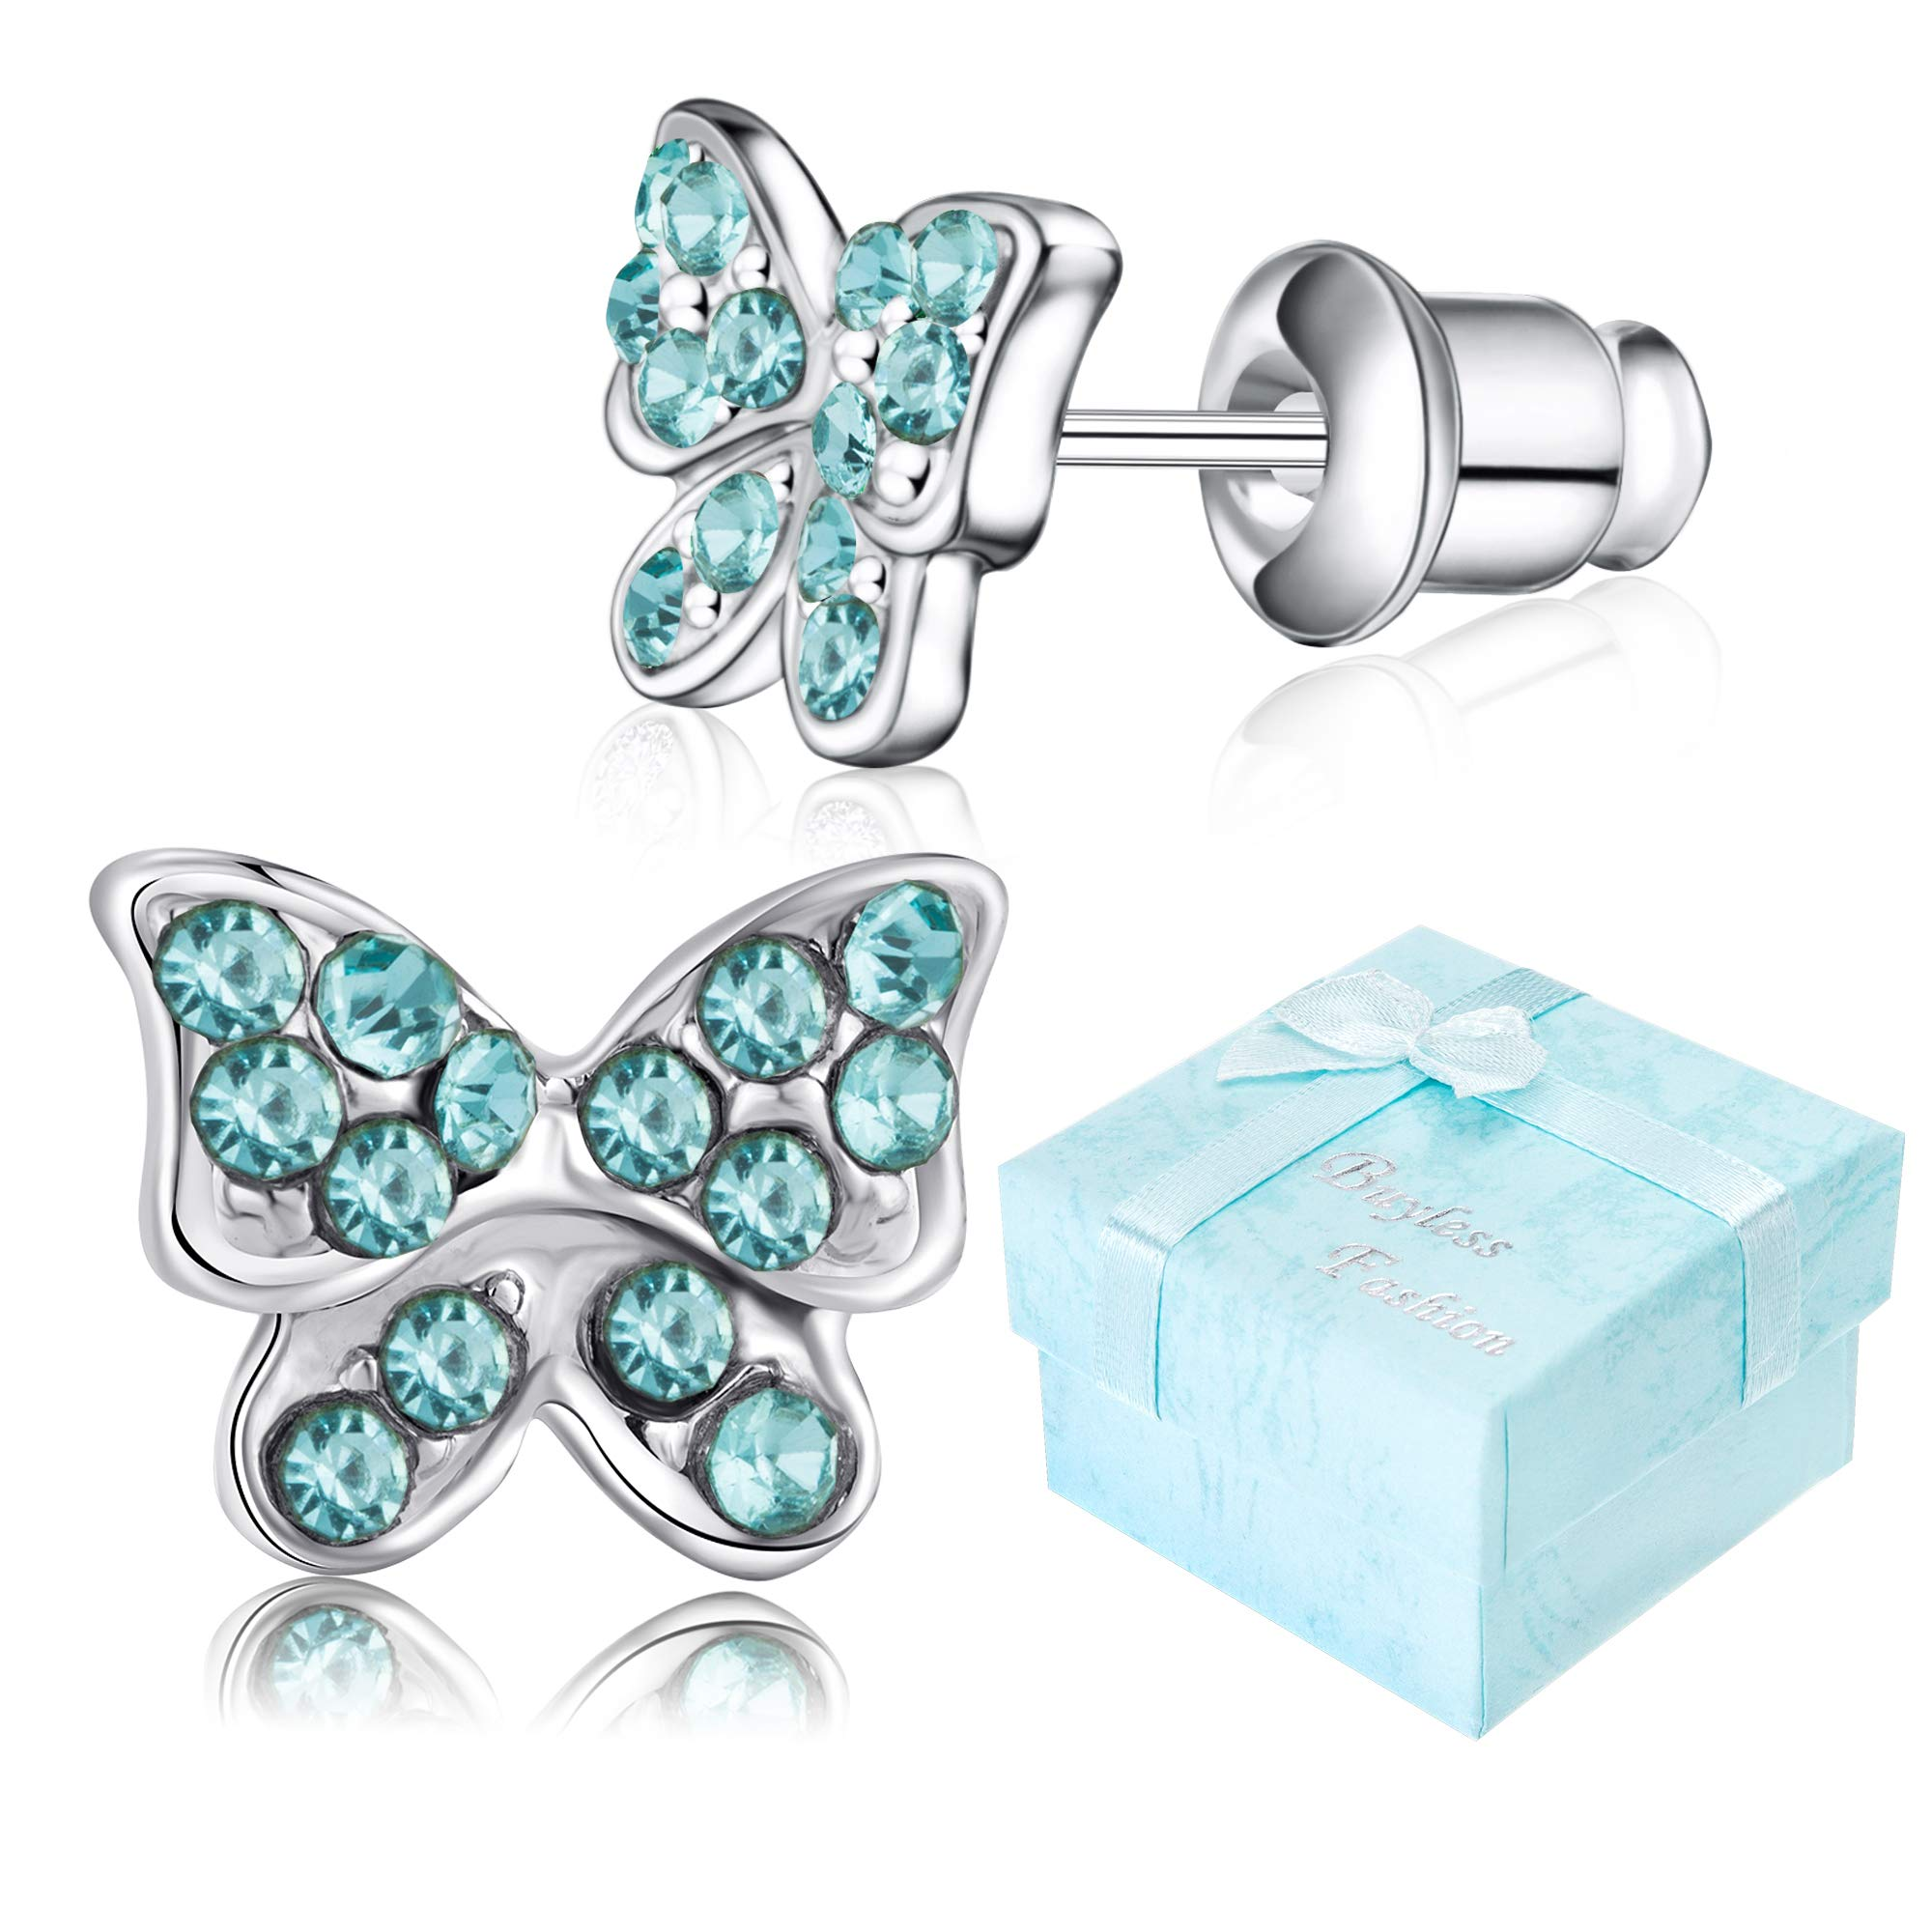 Buyless Fashion Girls Butterfly Stud Earrings Silver Surgical Stainless Steel - E100BTAQU by Buyless Fashion